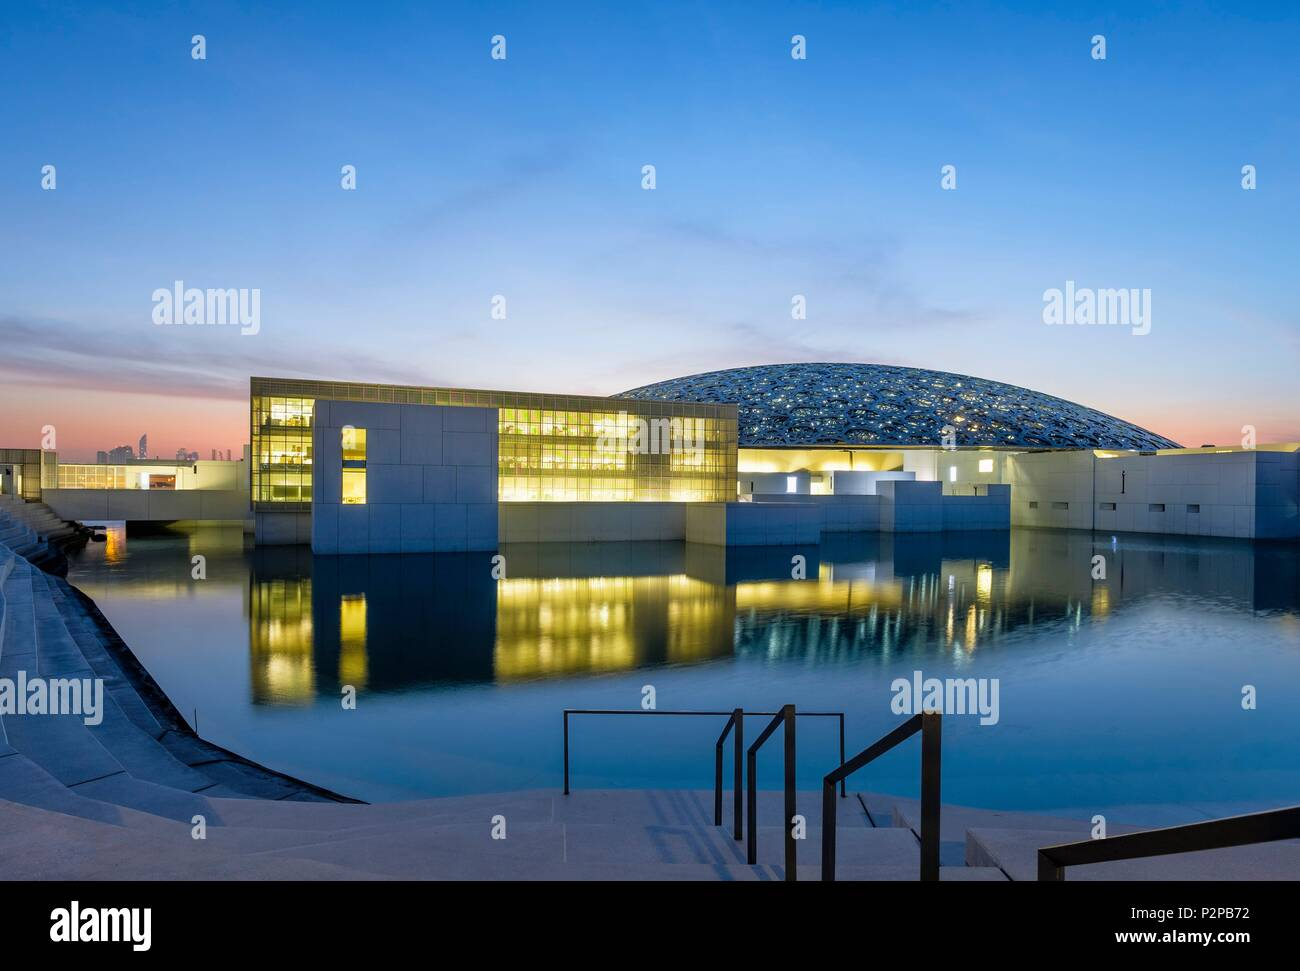 United Arab Emirates, Abu Dhabi, Saadiyat island, the Louvre Abu Dhabi is the first universal museum in the Arab world designed and built by French architect Jean Nouvel - Stock Image